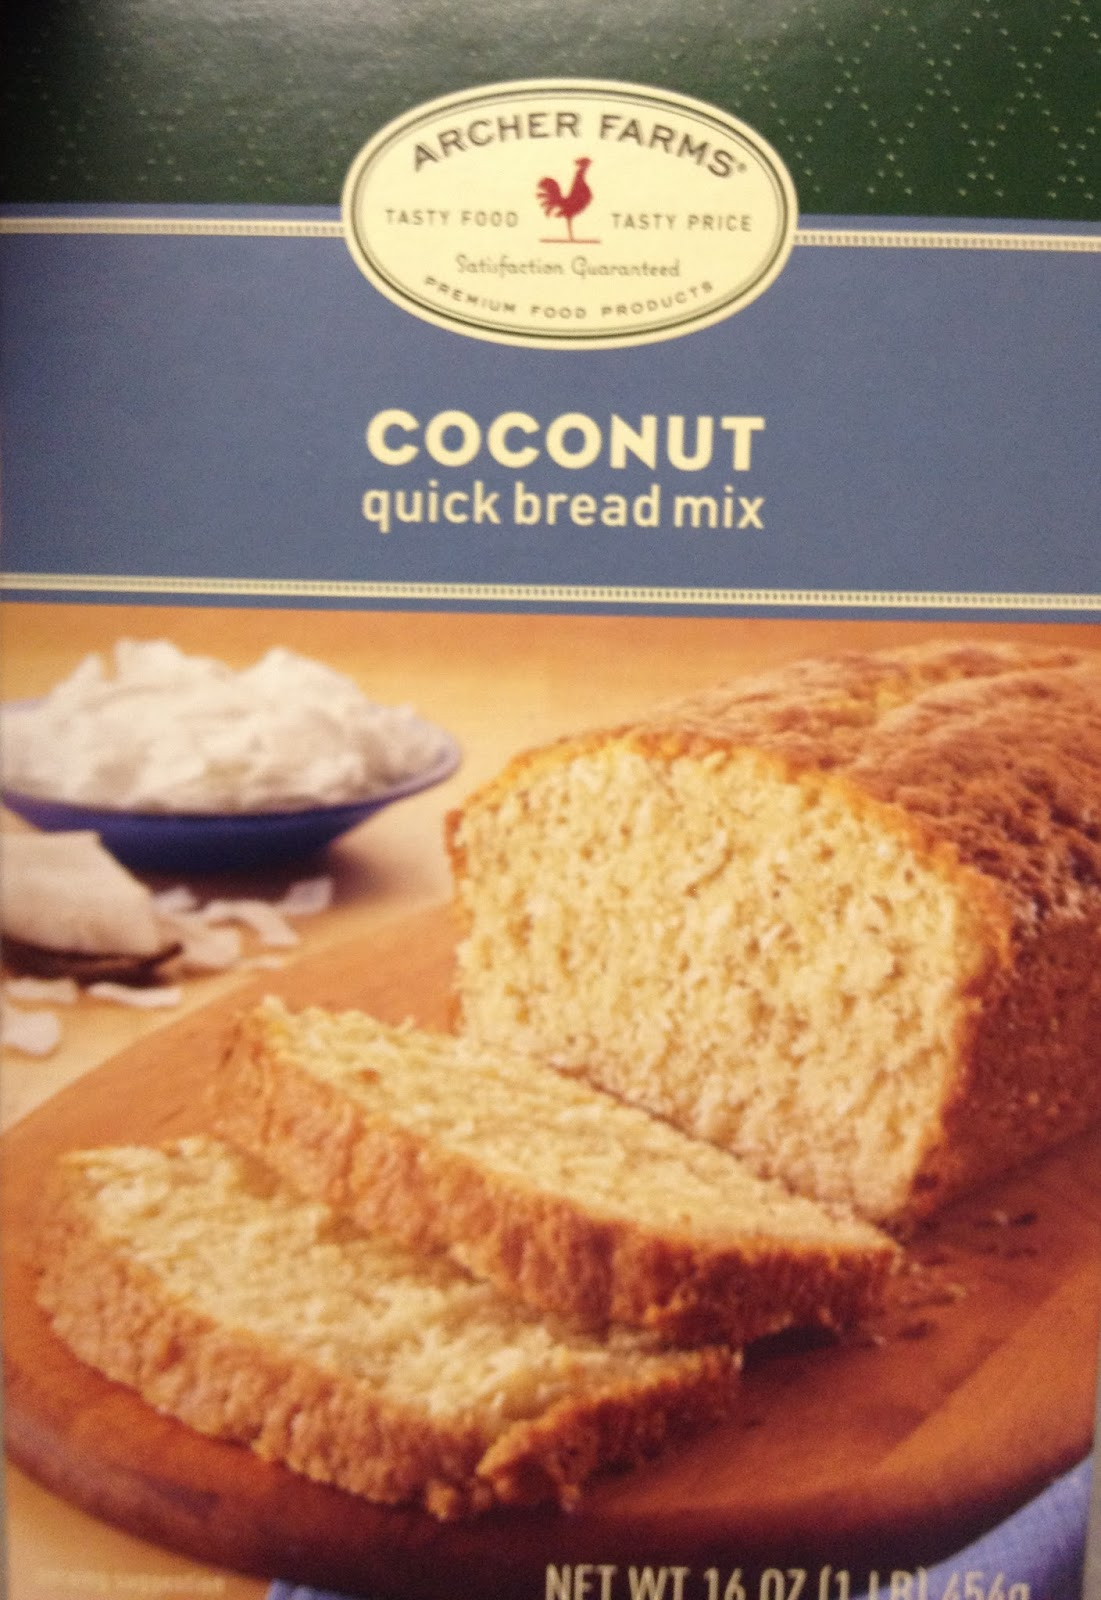 Archer Farms Products In Target Makes This Wonderful Coconut Box Mix I Know It Calls Itself Bread But There Is A Cupcake Recipe On The Back